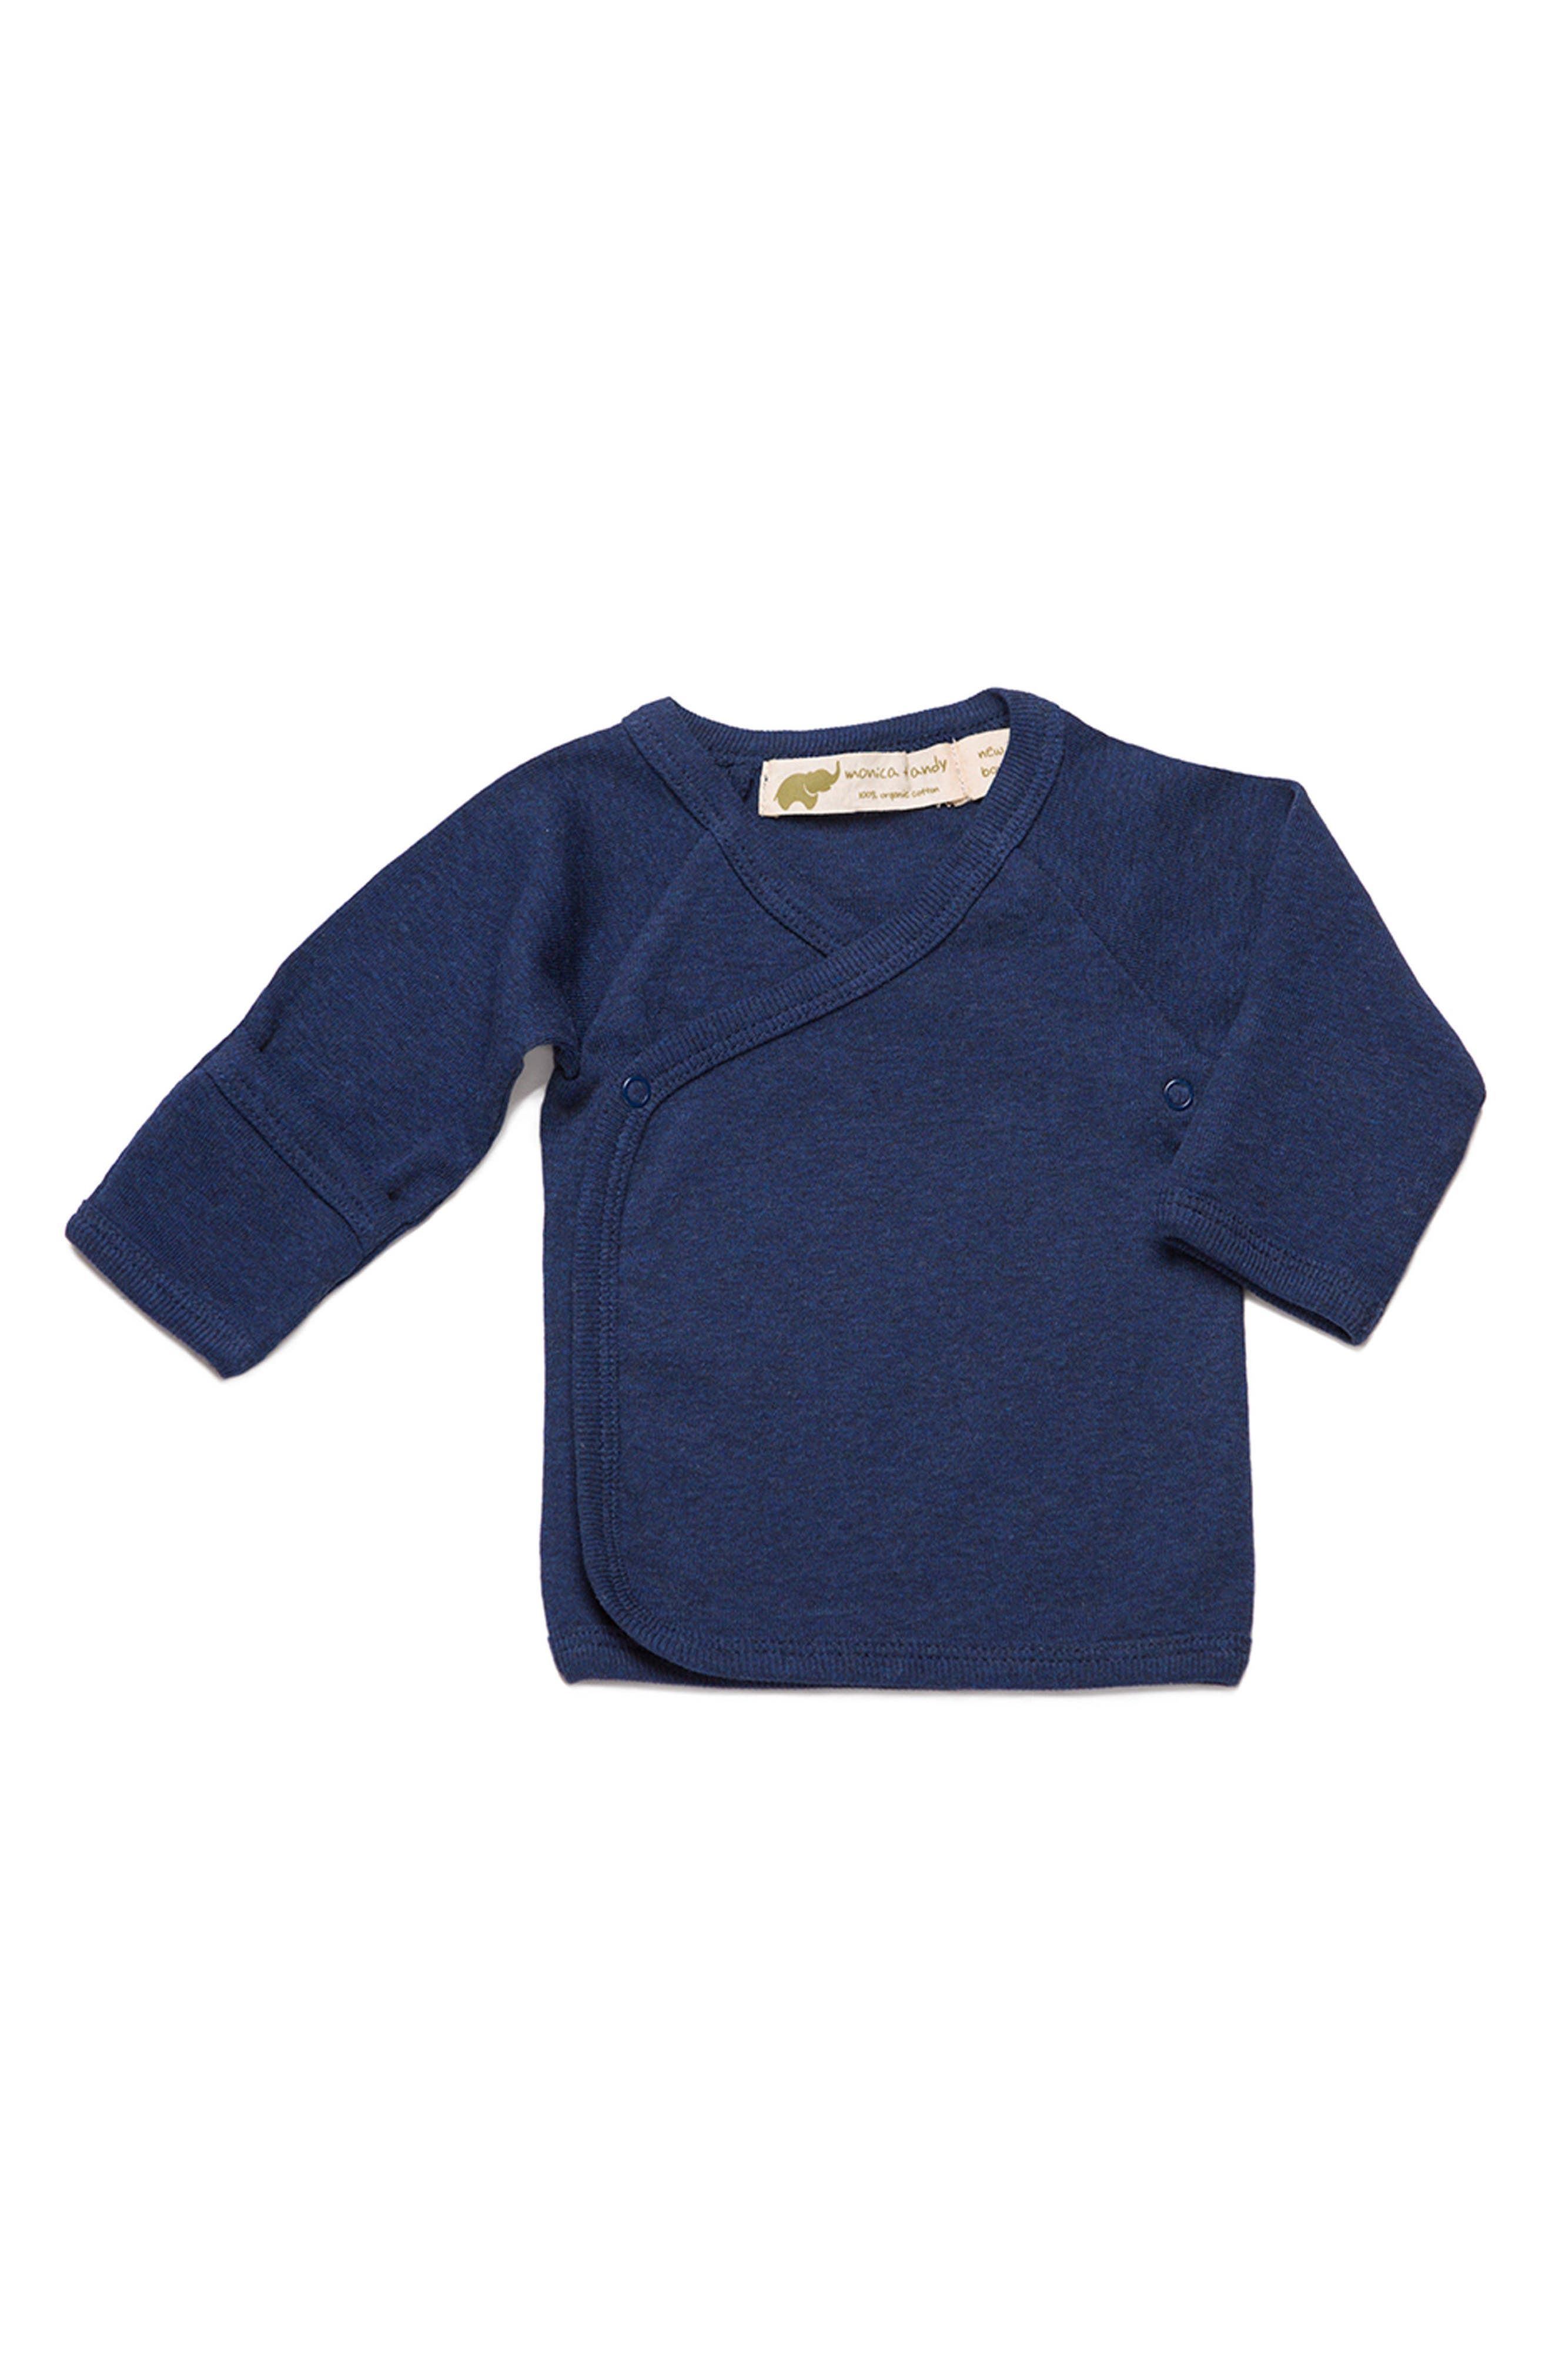 Hello Baby Organic Cotton Top,                             Main thumbnail 1, color,                             Navy Blue  Heather